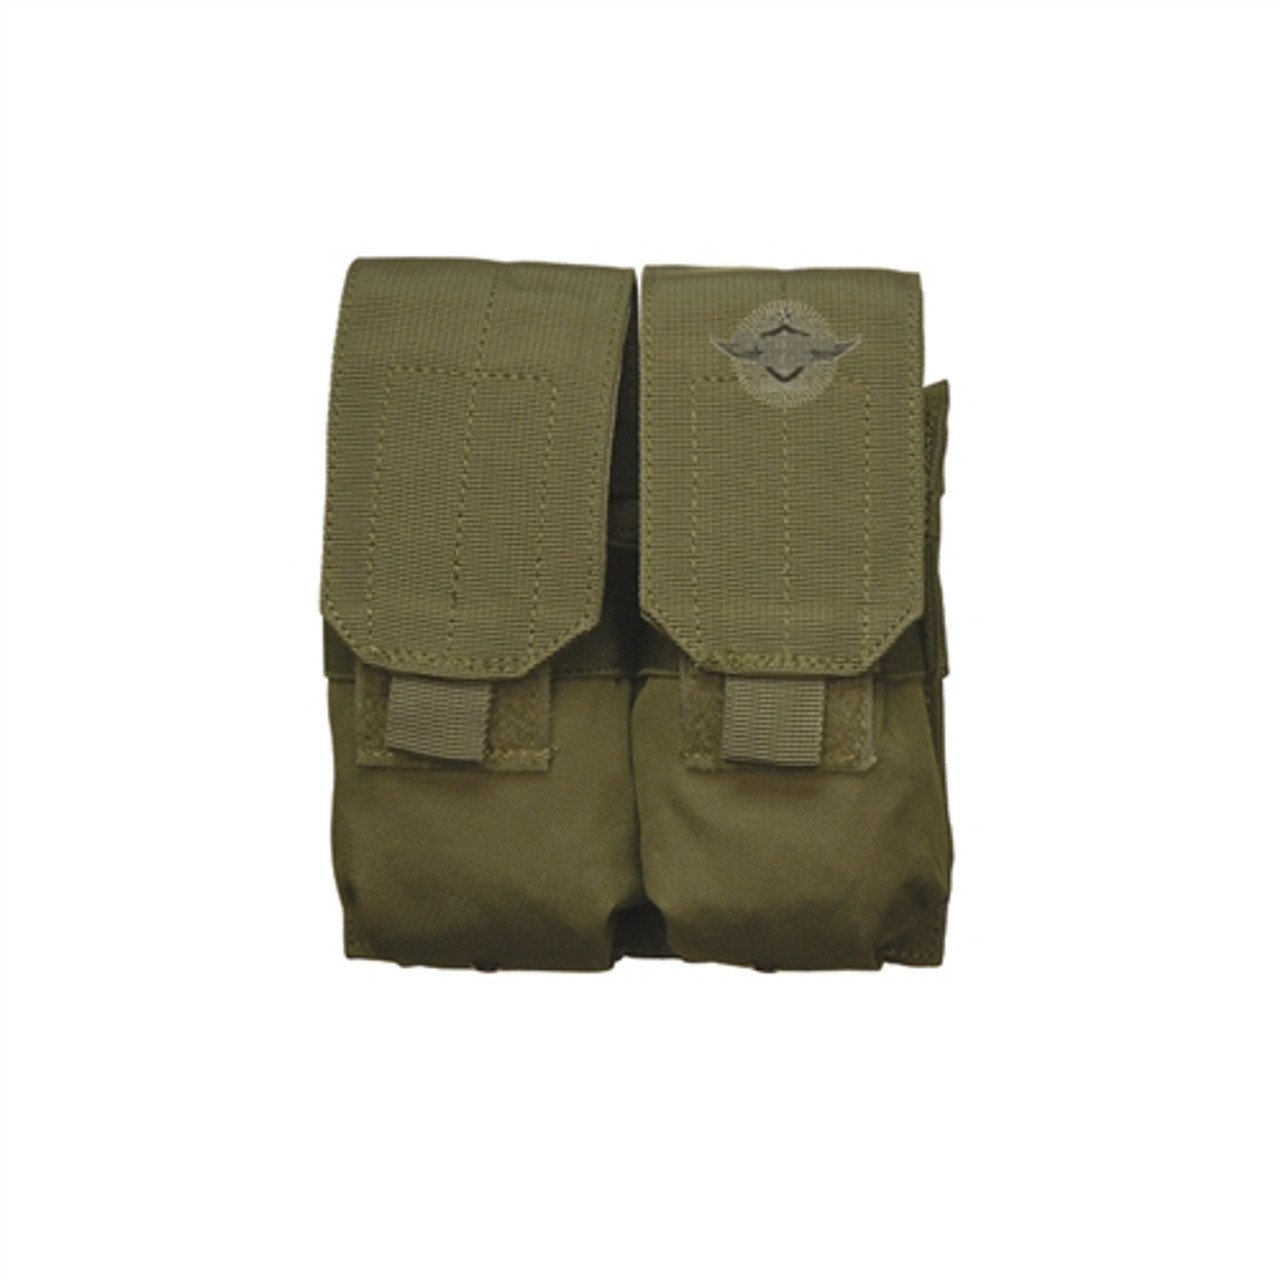 Double Mag Pouch  from Hessen Tactical.